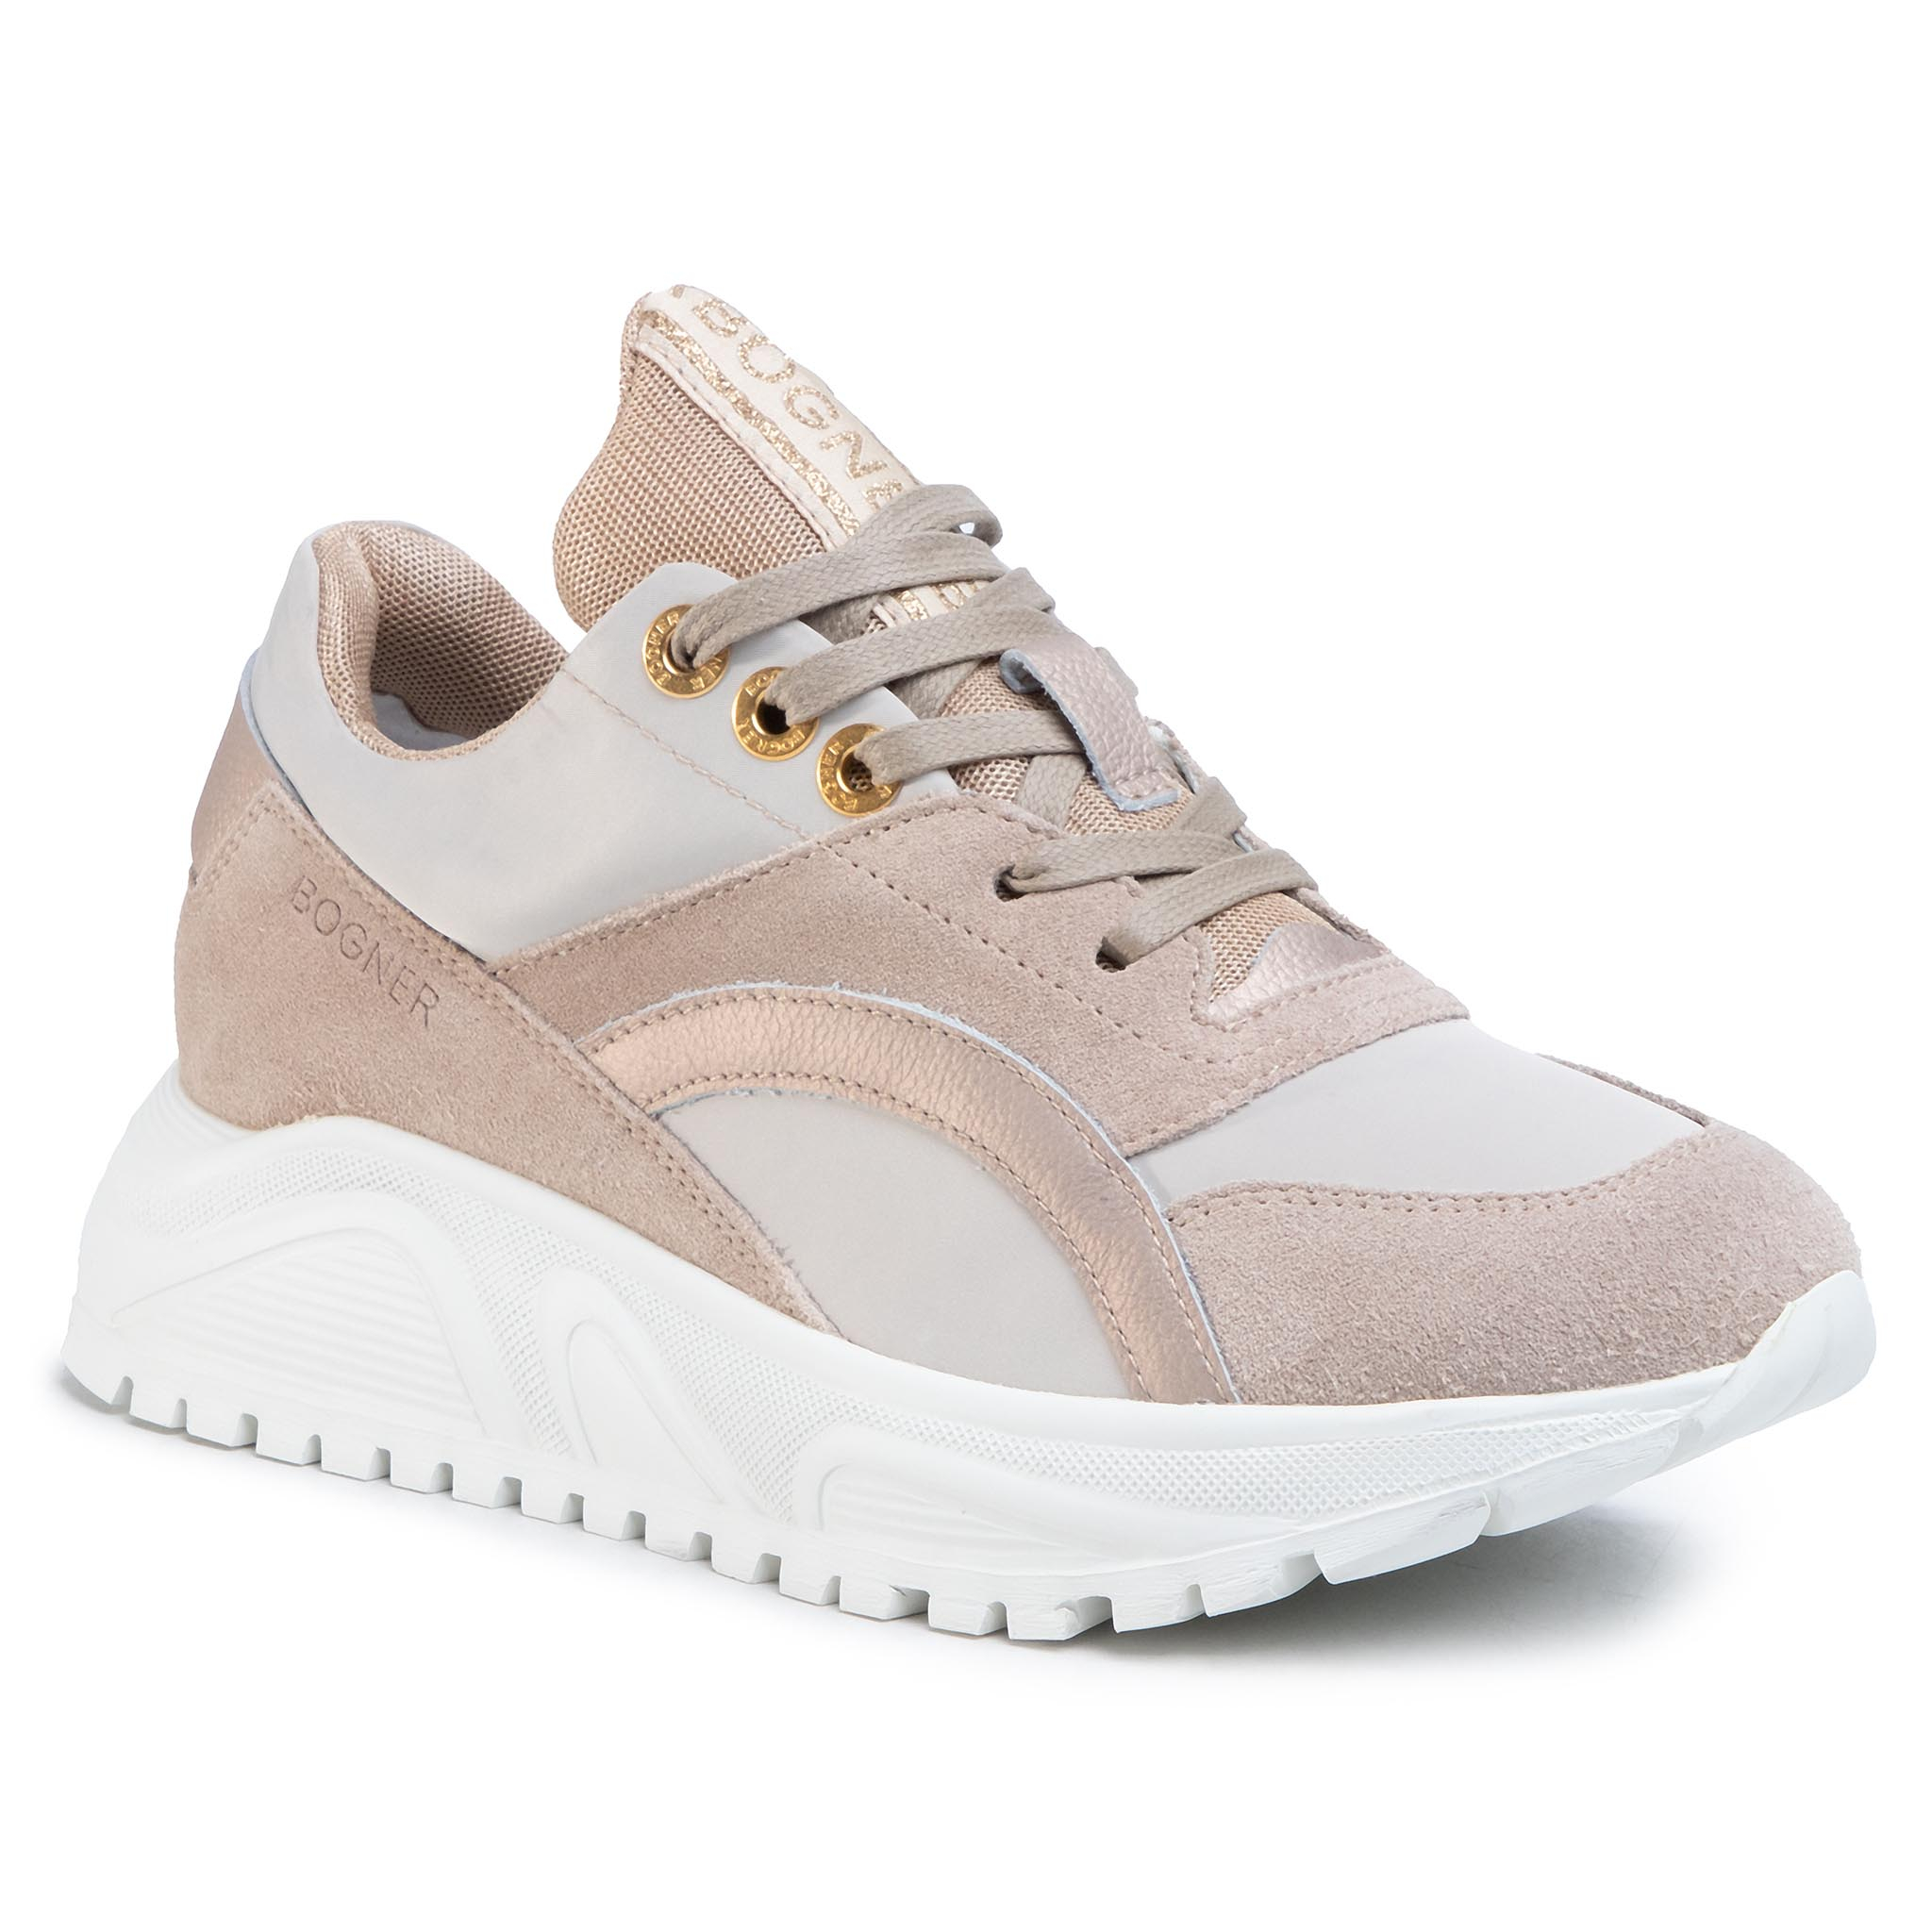 Sneakers BOGNER - New Malaga 4 A 201-2952 Beige 32